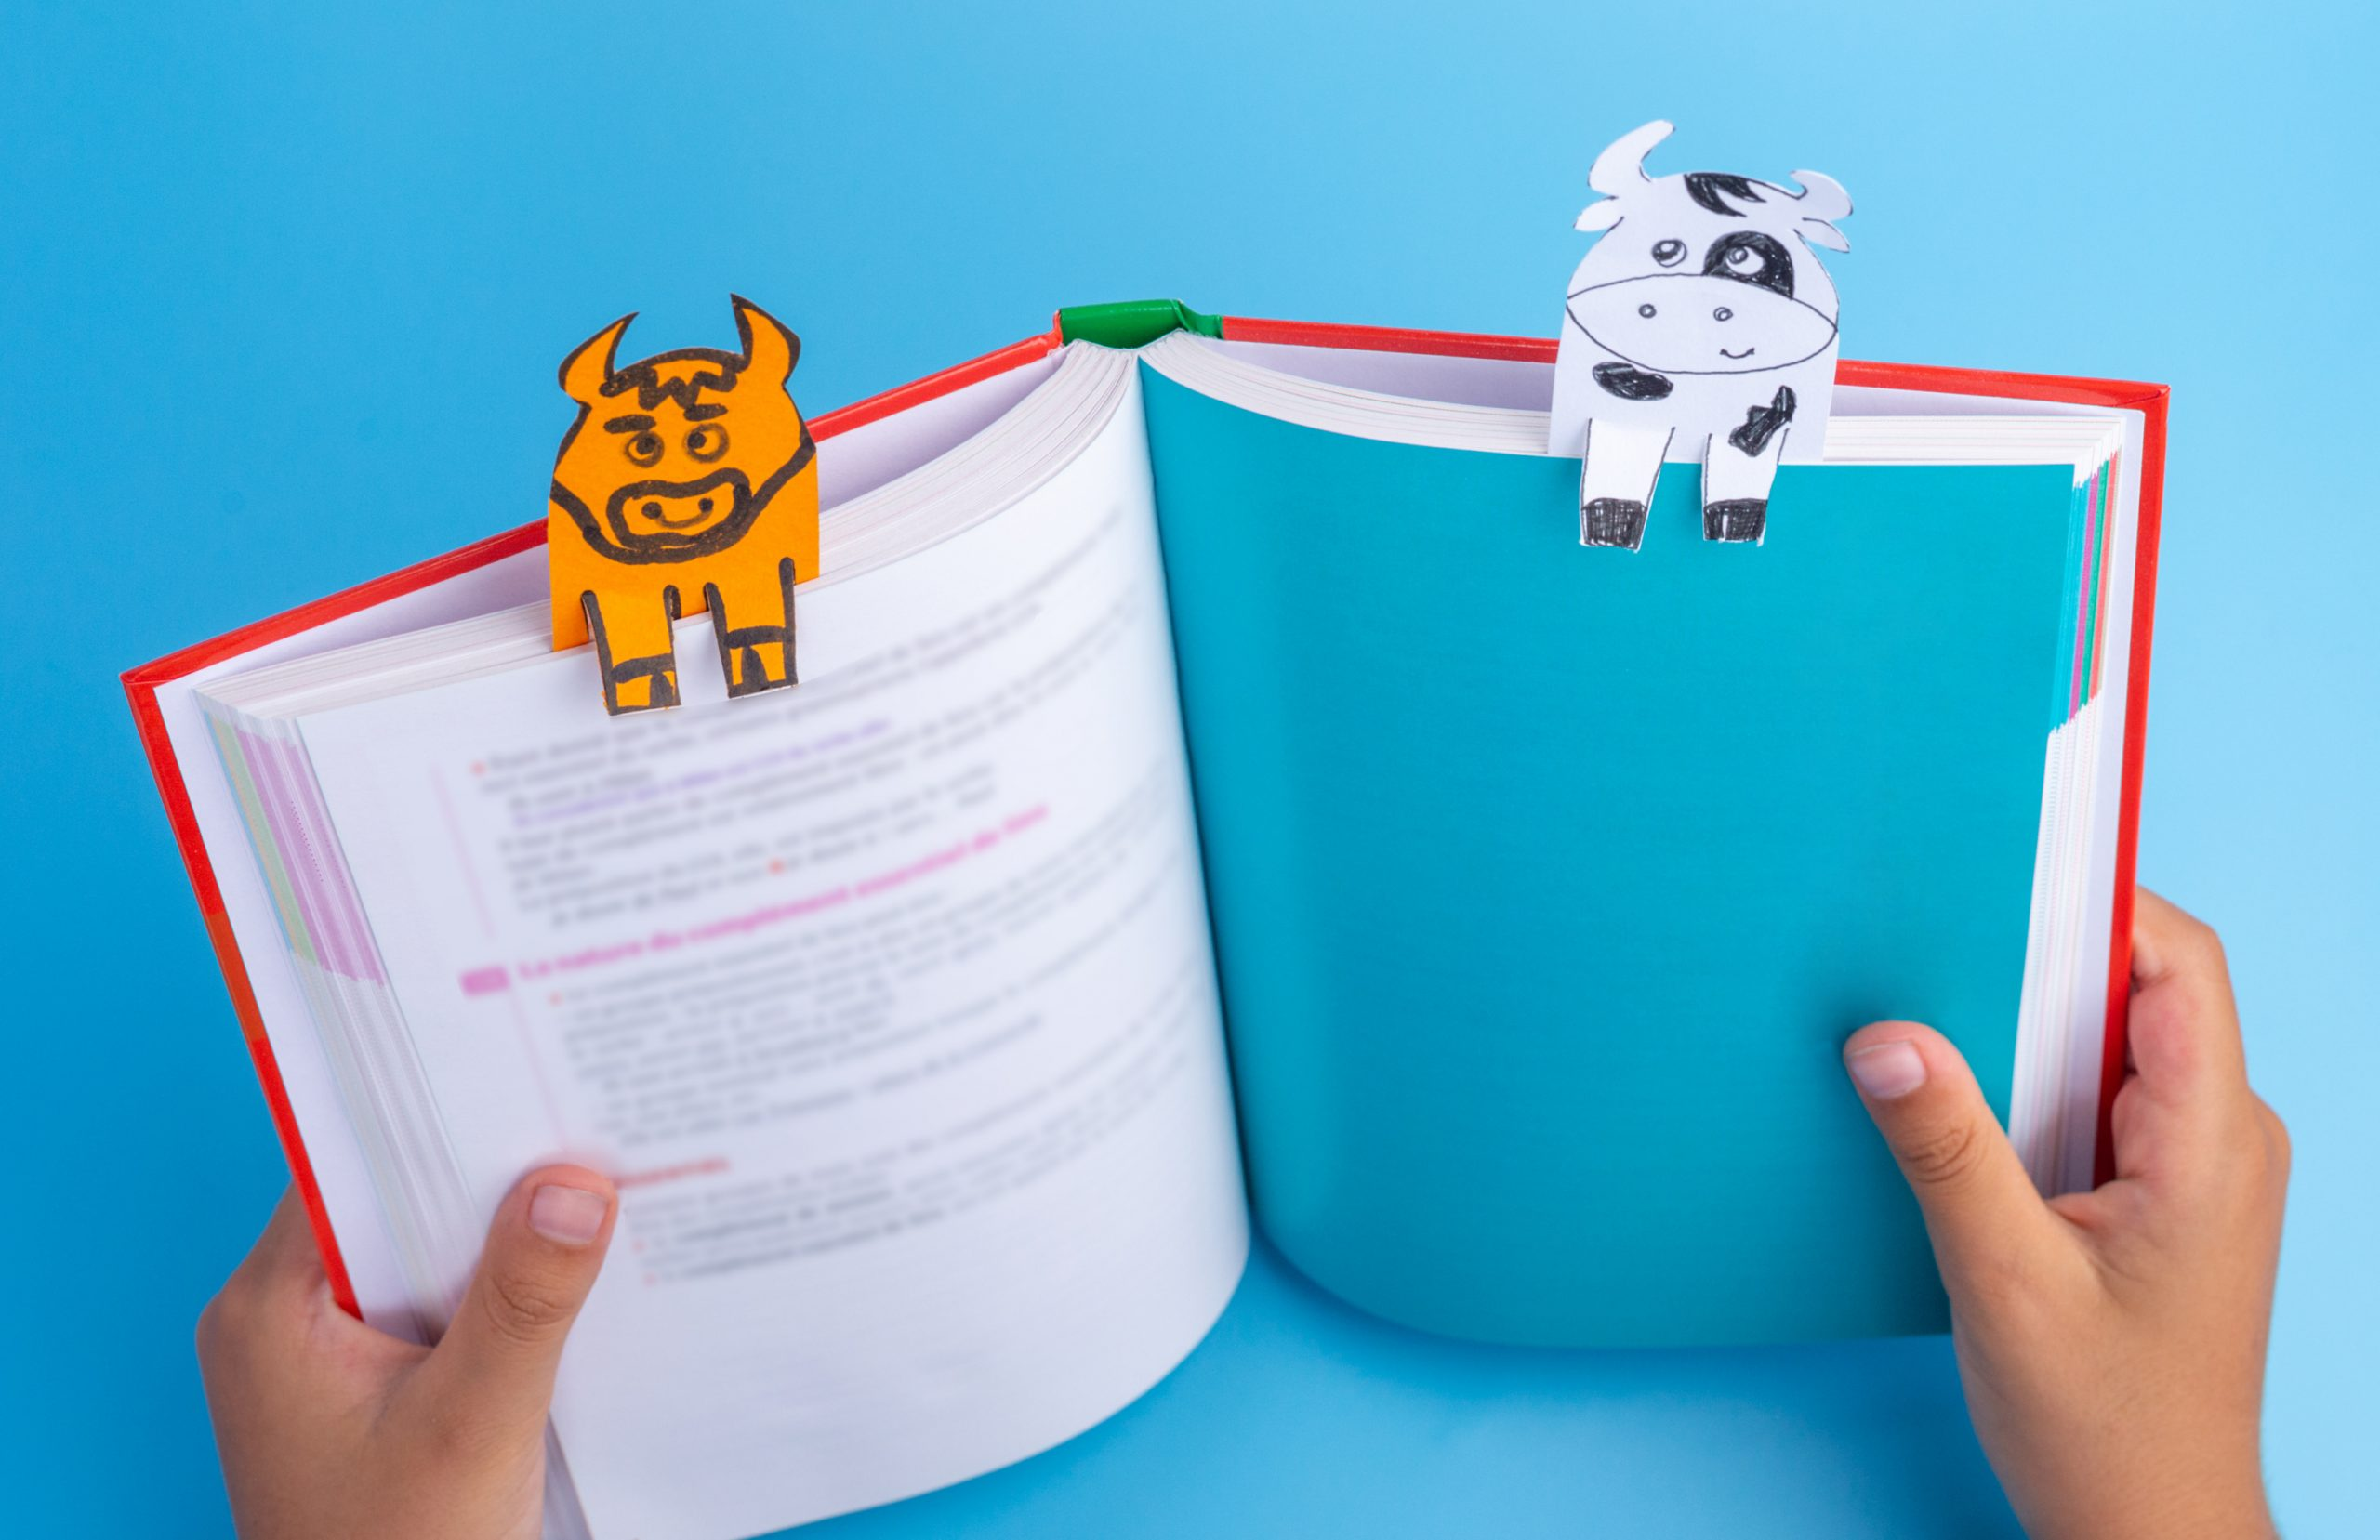 handmade bookmarks of cows on a book